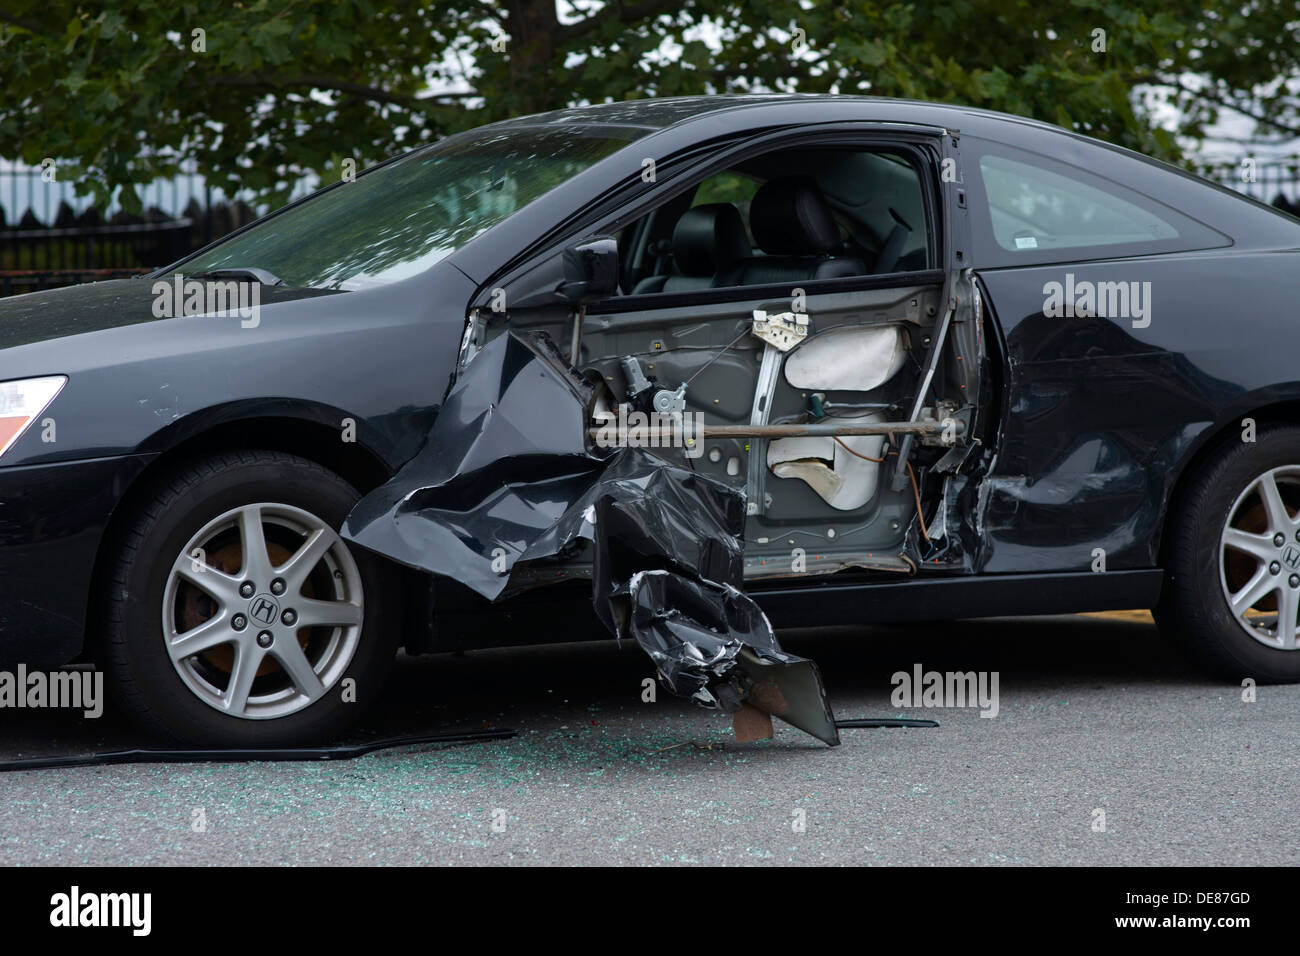 PARKED CRASHED AUTOMOBILE DAMAGED BY SIDESWIPE COLLISION ON CURVE OF ROAD - Stock Image